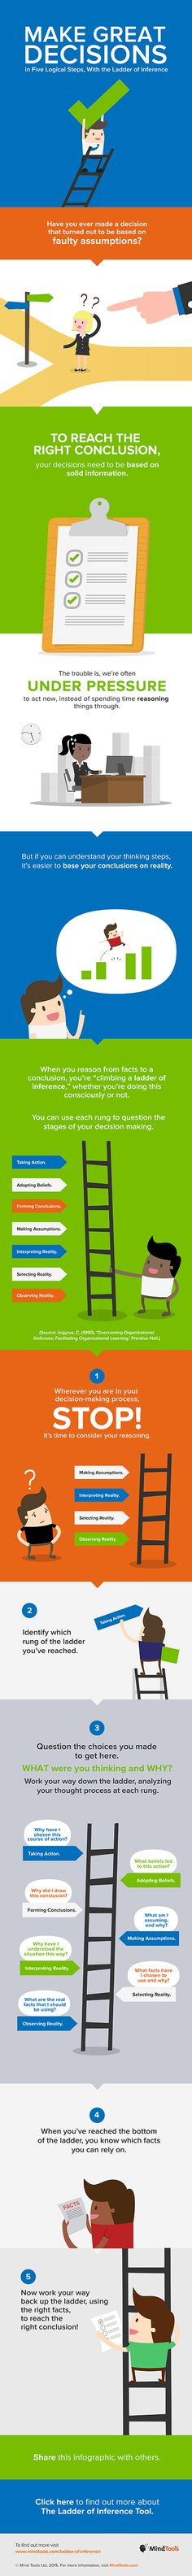 The Ladder of Inference Infographic - http://elearninginfographics.com/the-ladder-of-inference-infographic/